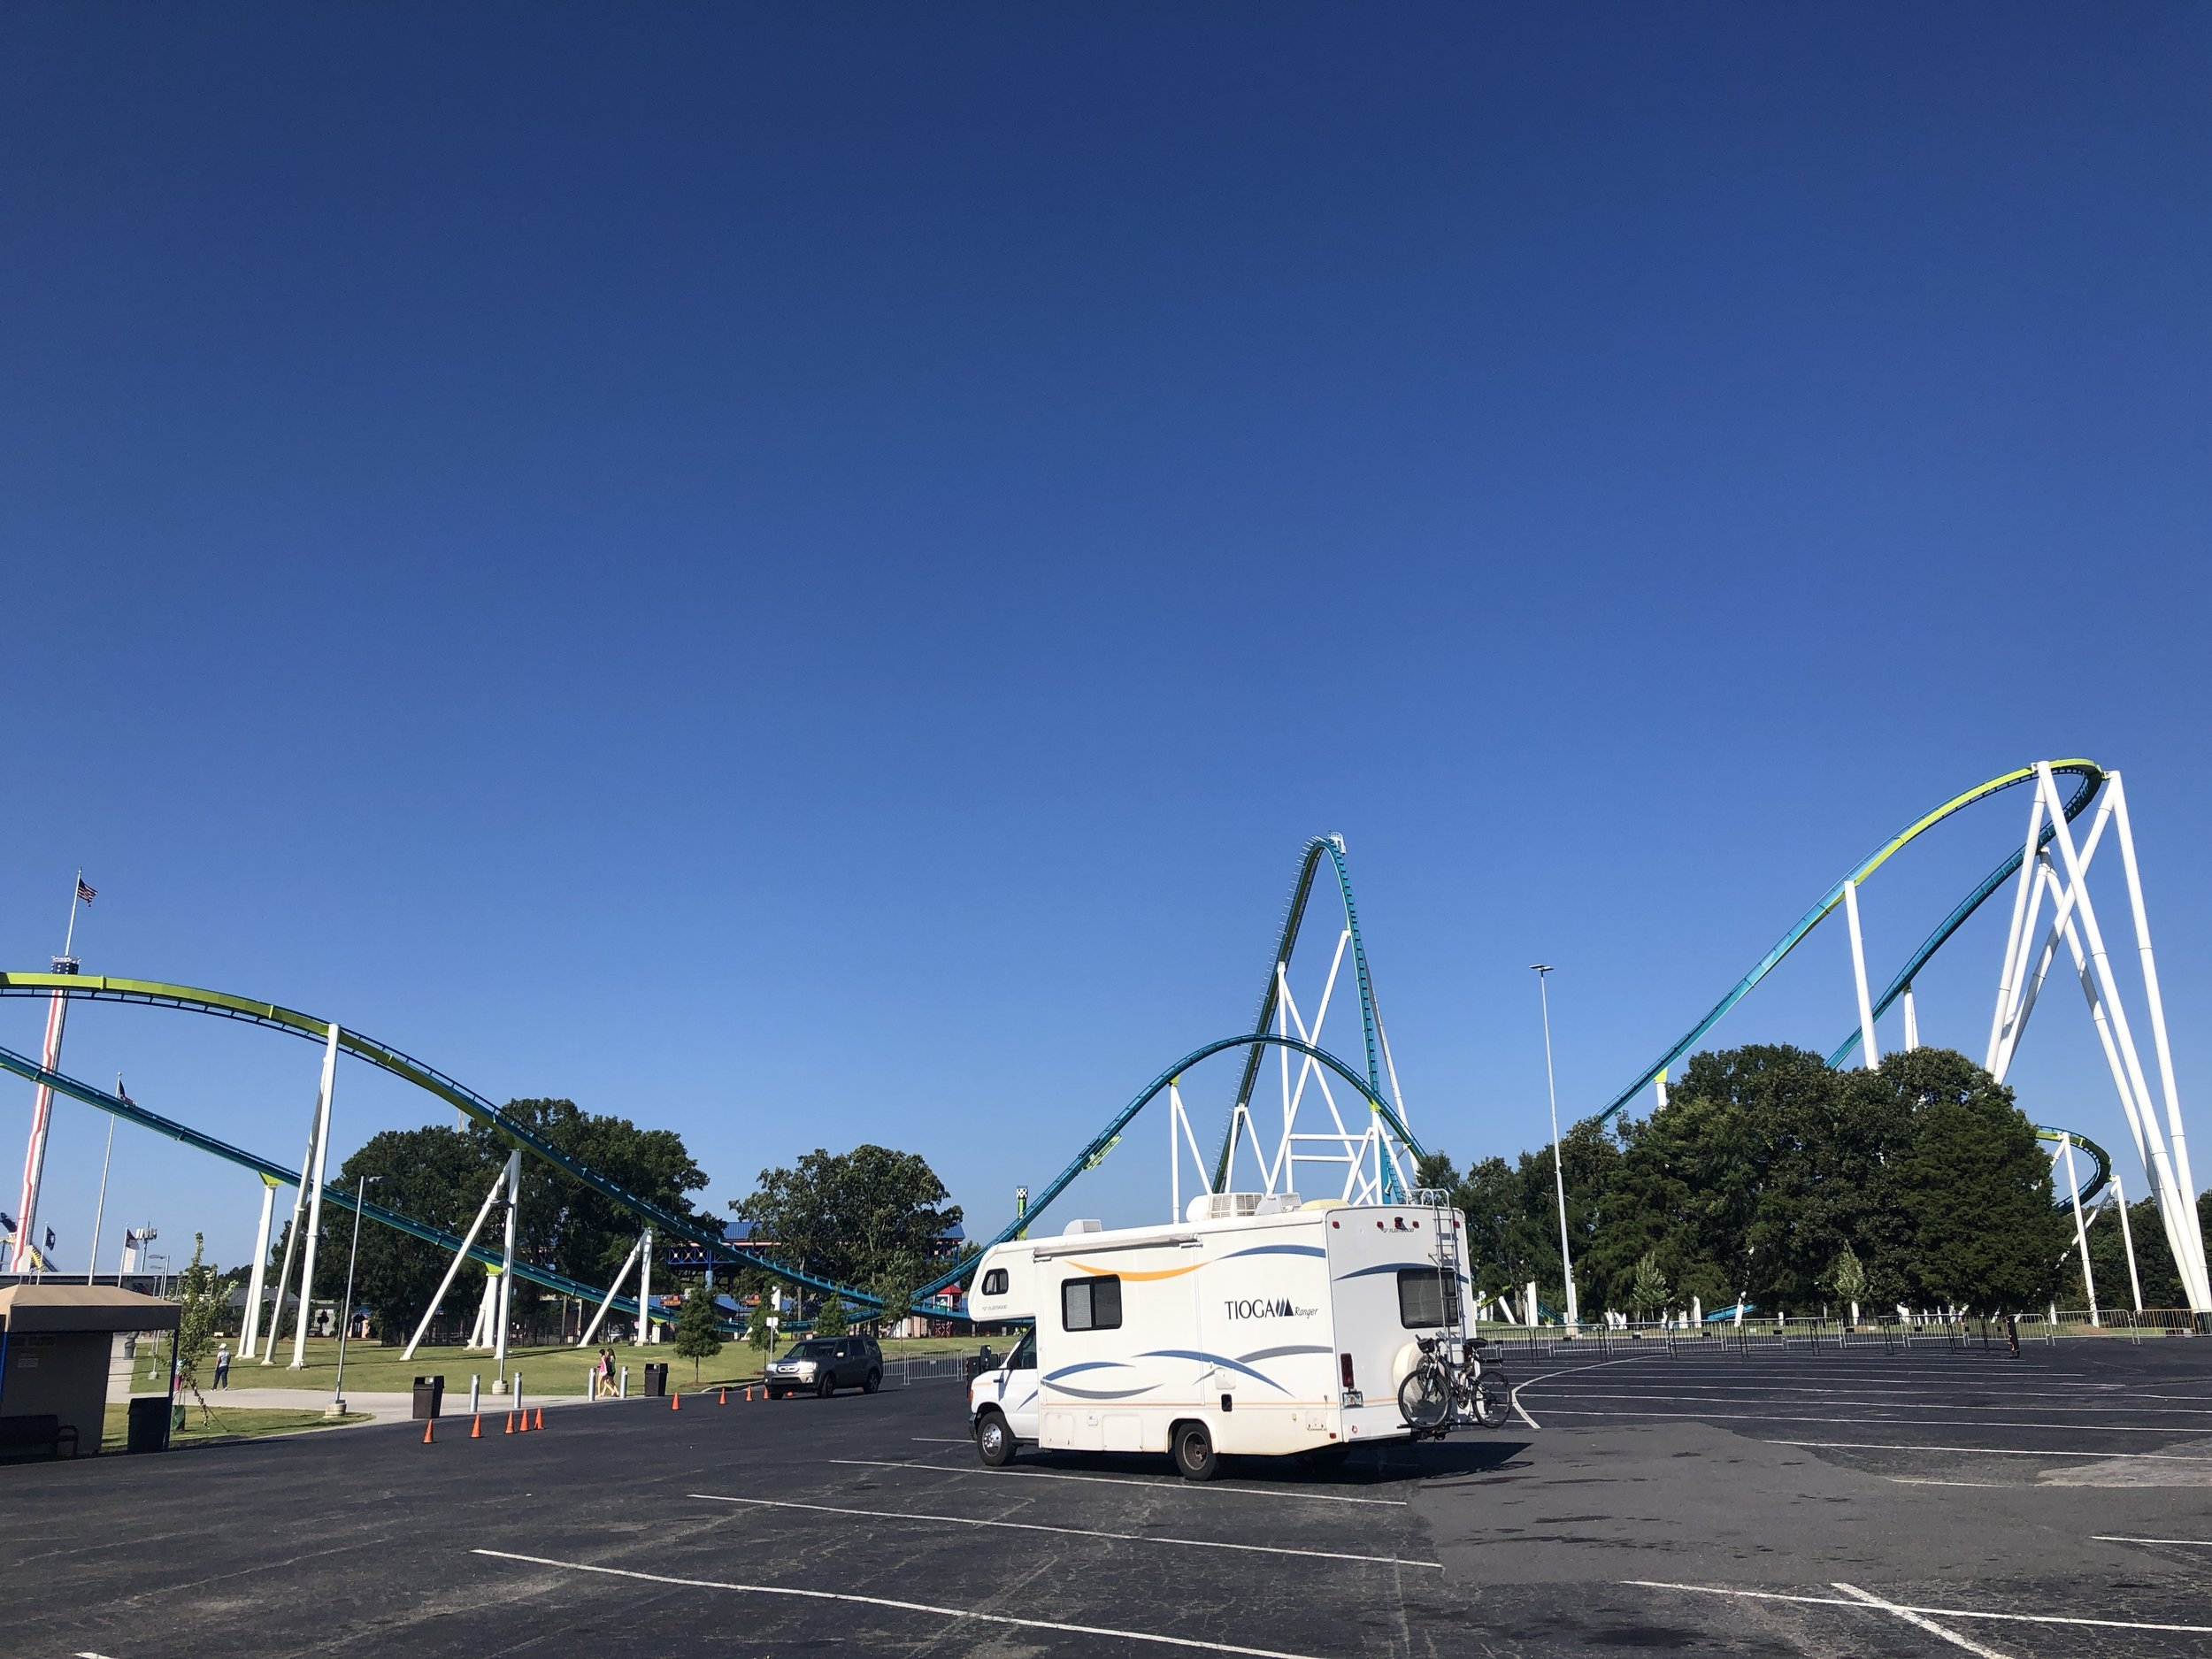 Imua and Fury 325